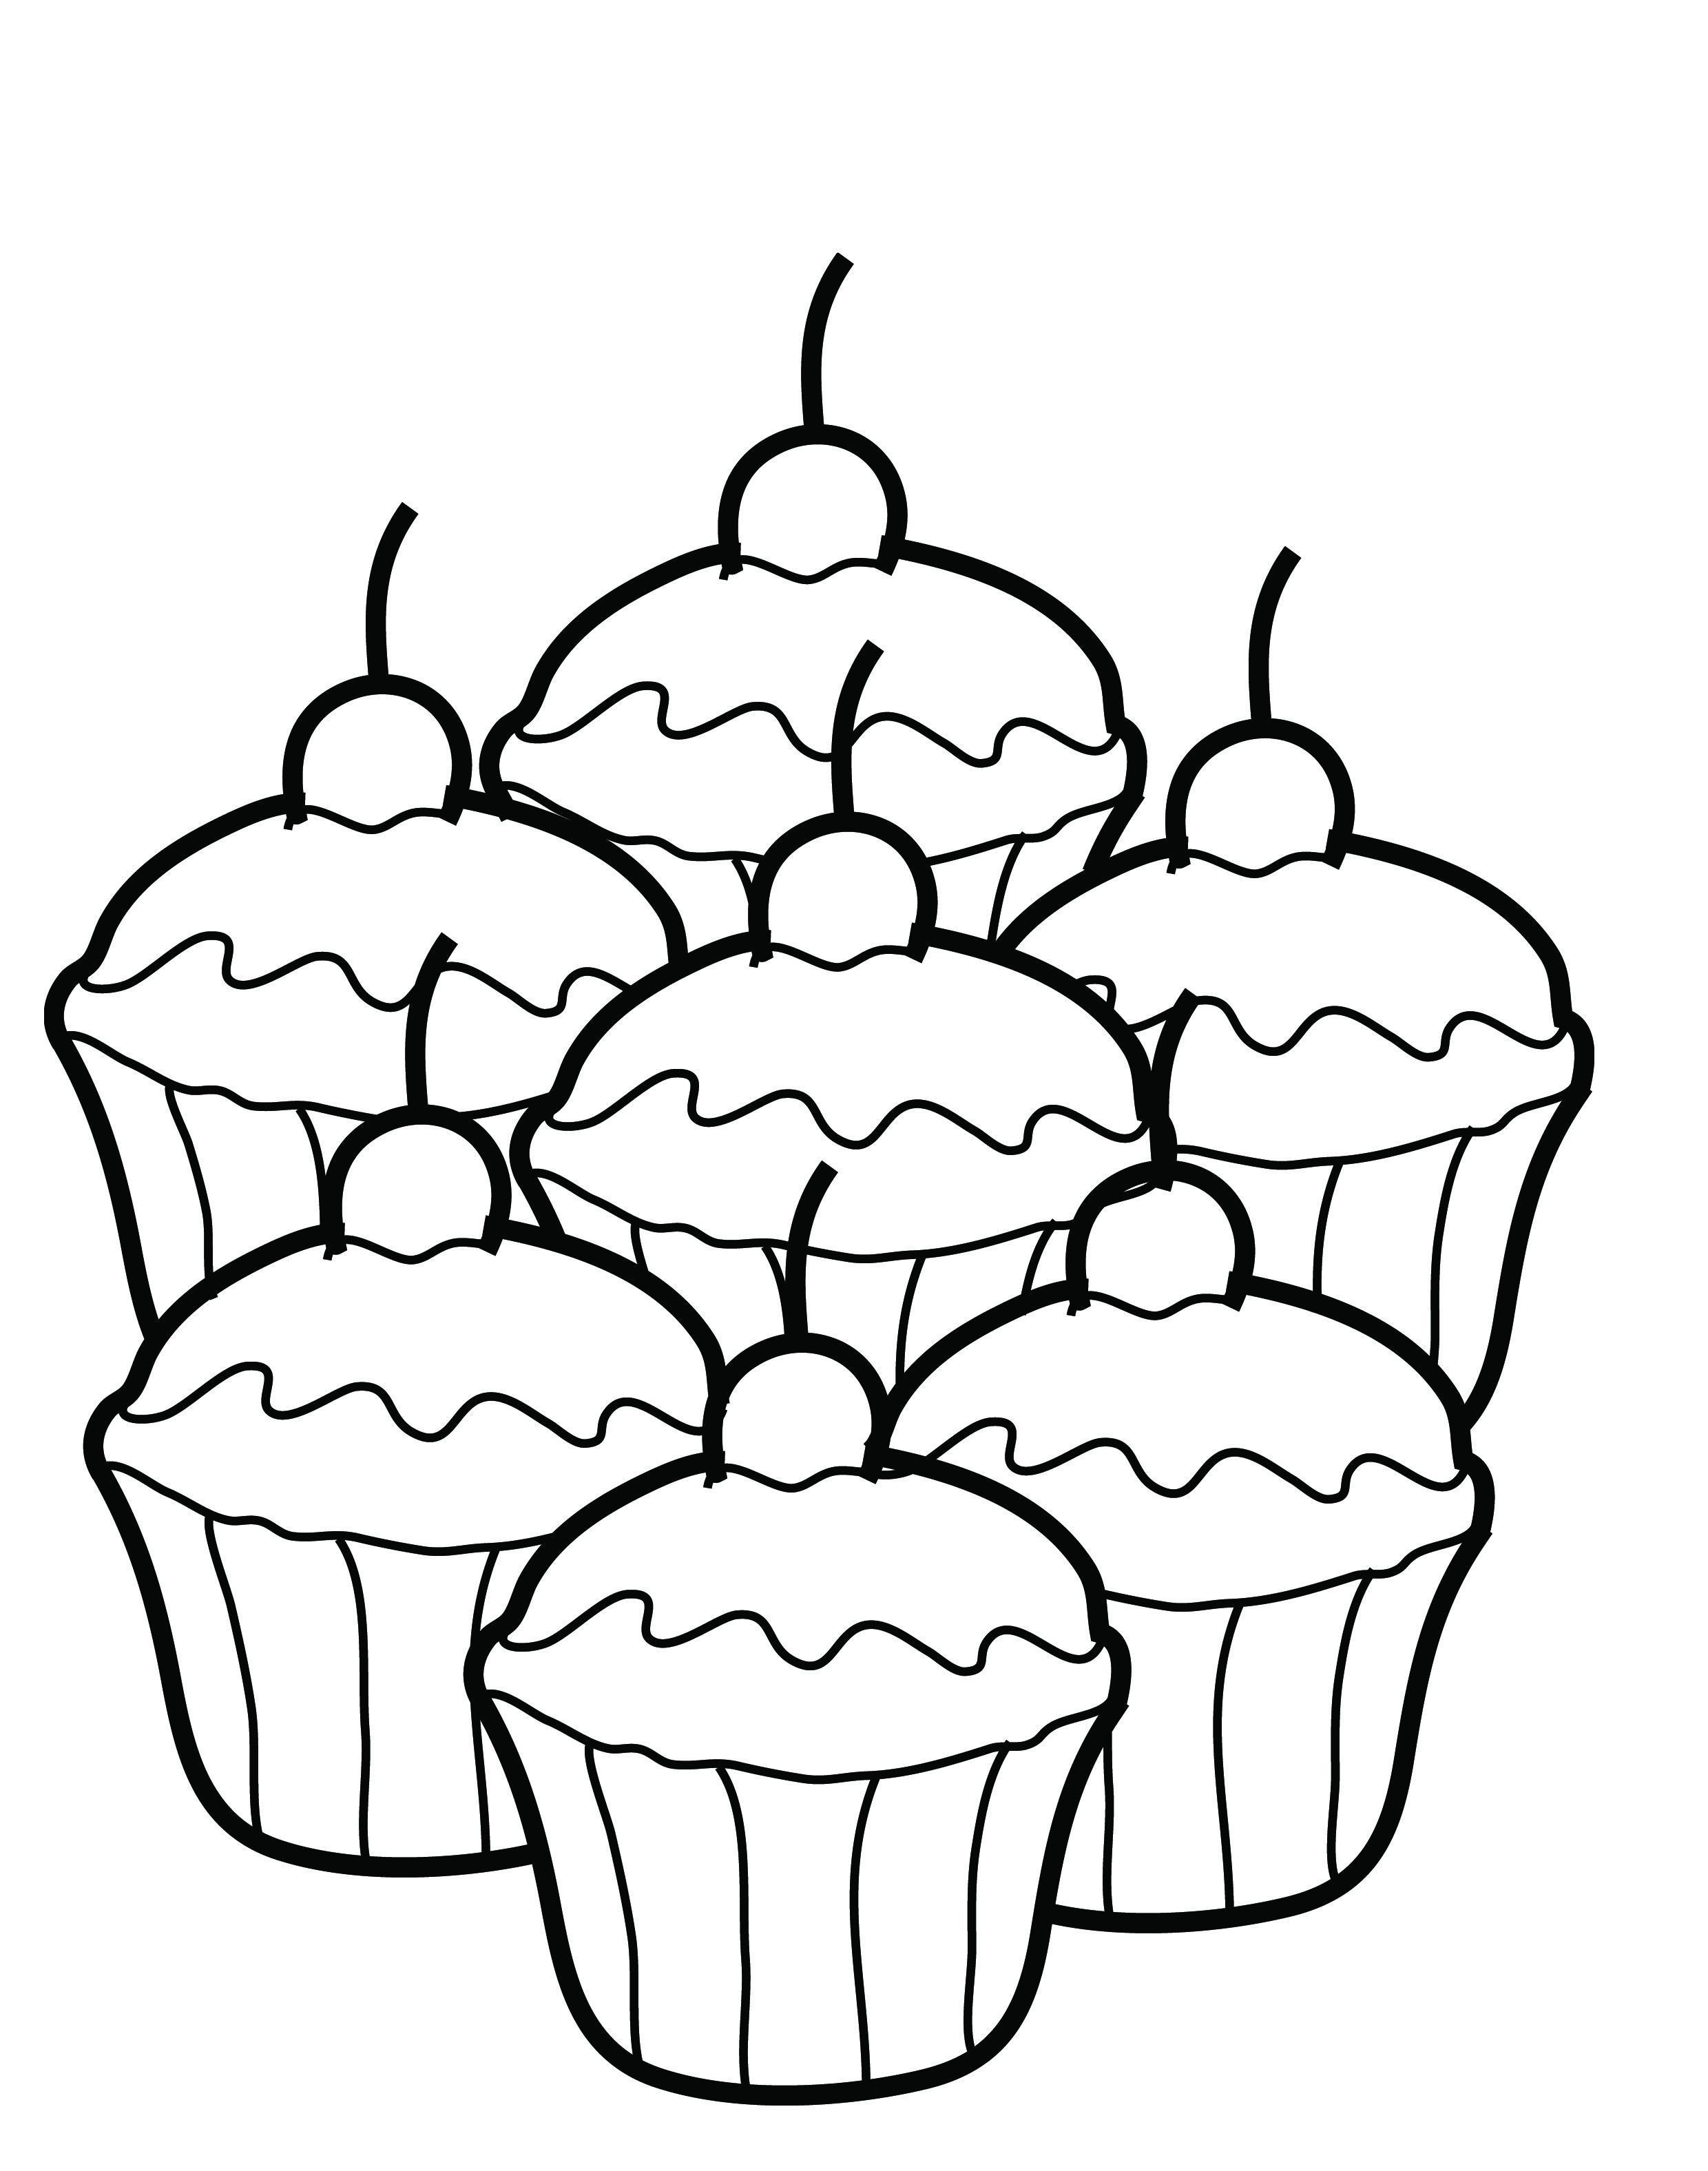 cupcake coloring pages for kids - Coloring Papges